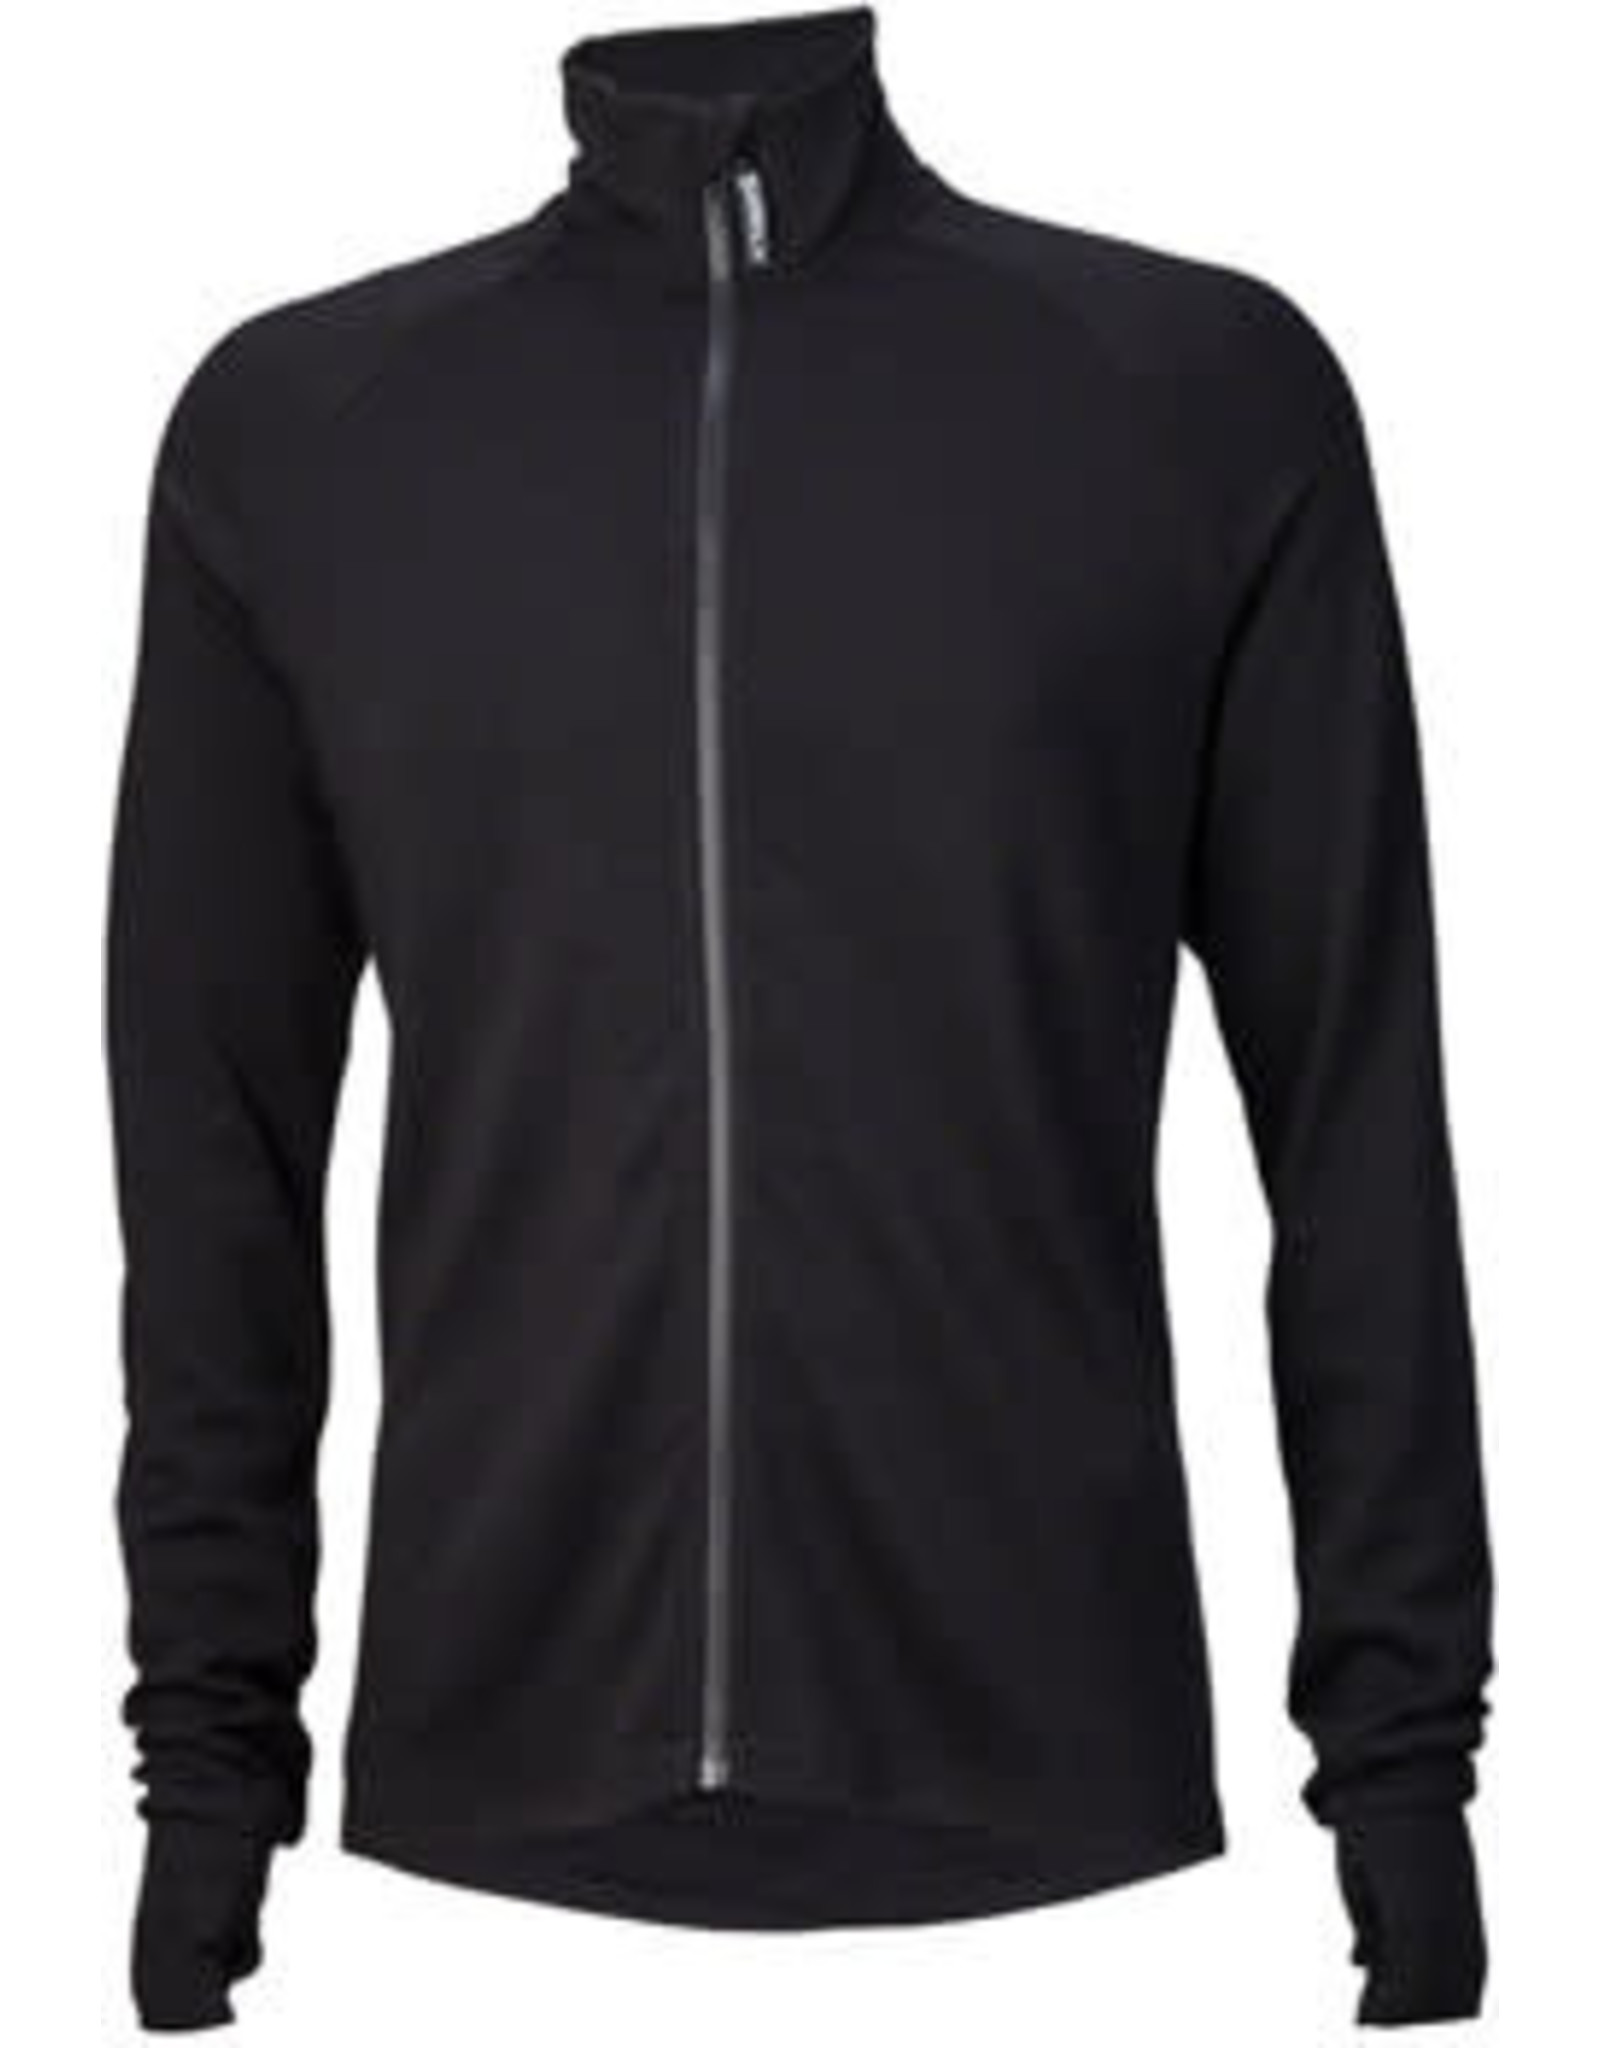 Surly Surly Merino Wool Jersey - Black, Long Sleeve, Men's, Small